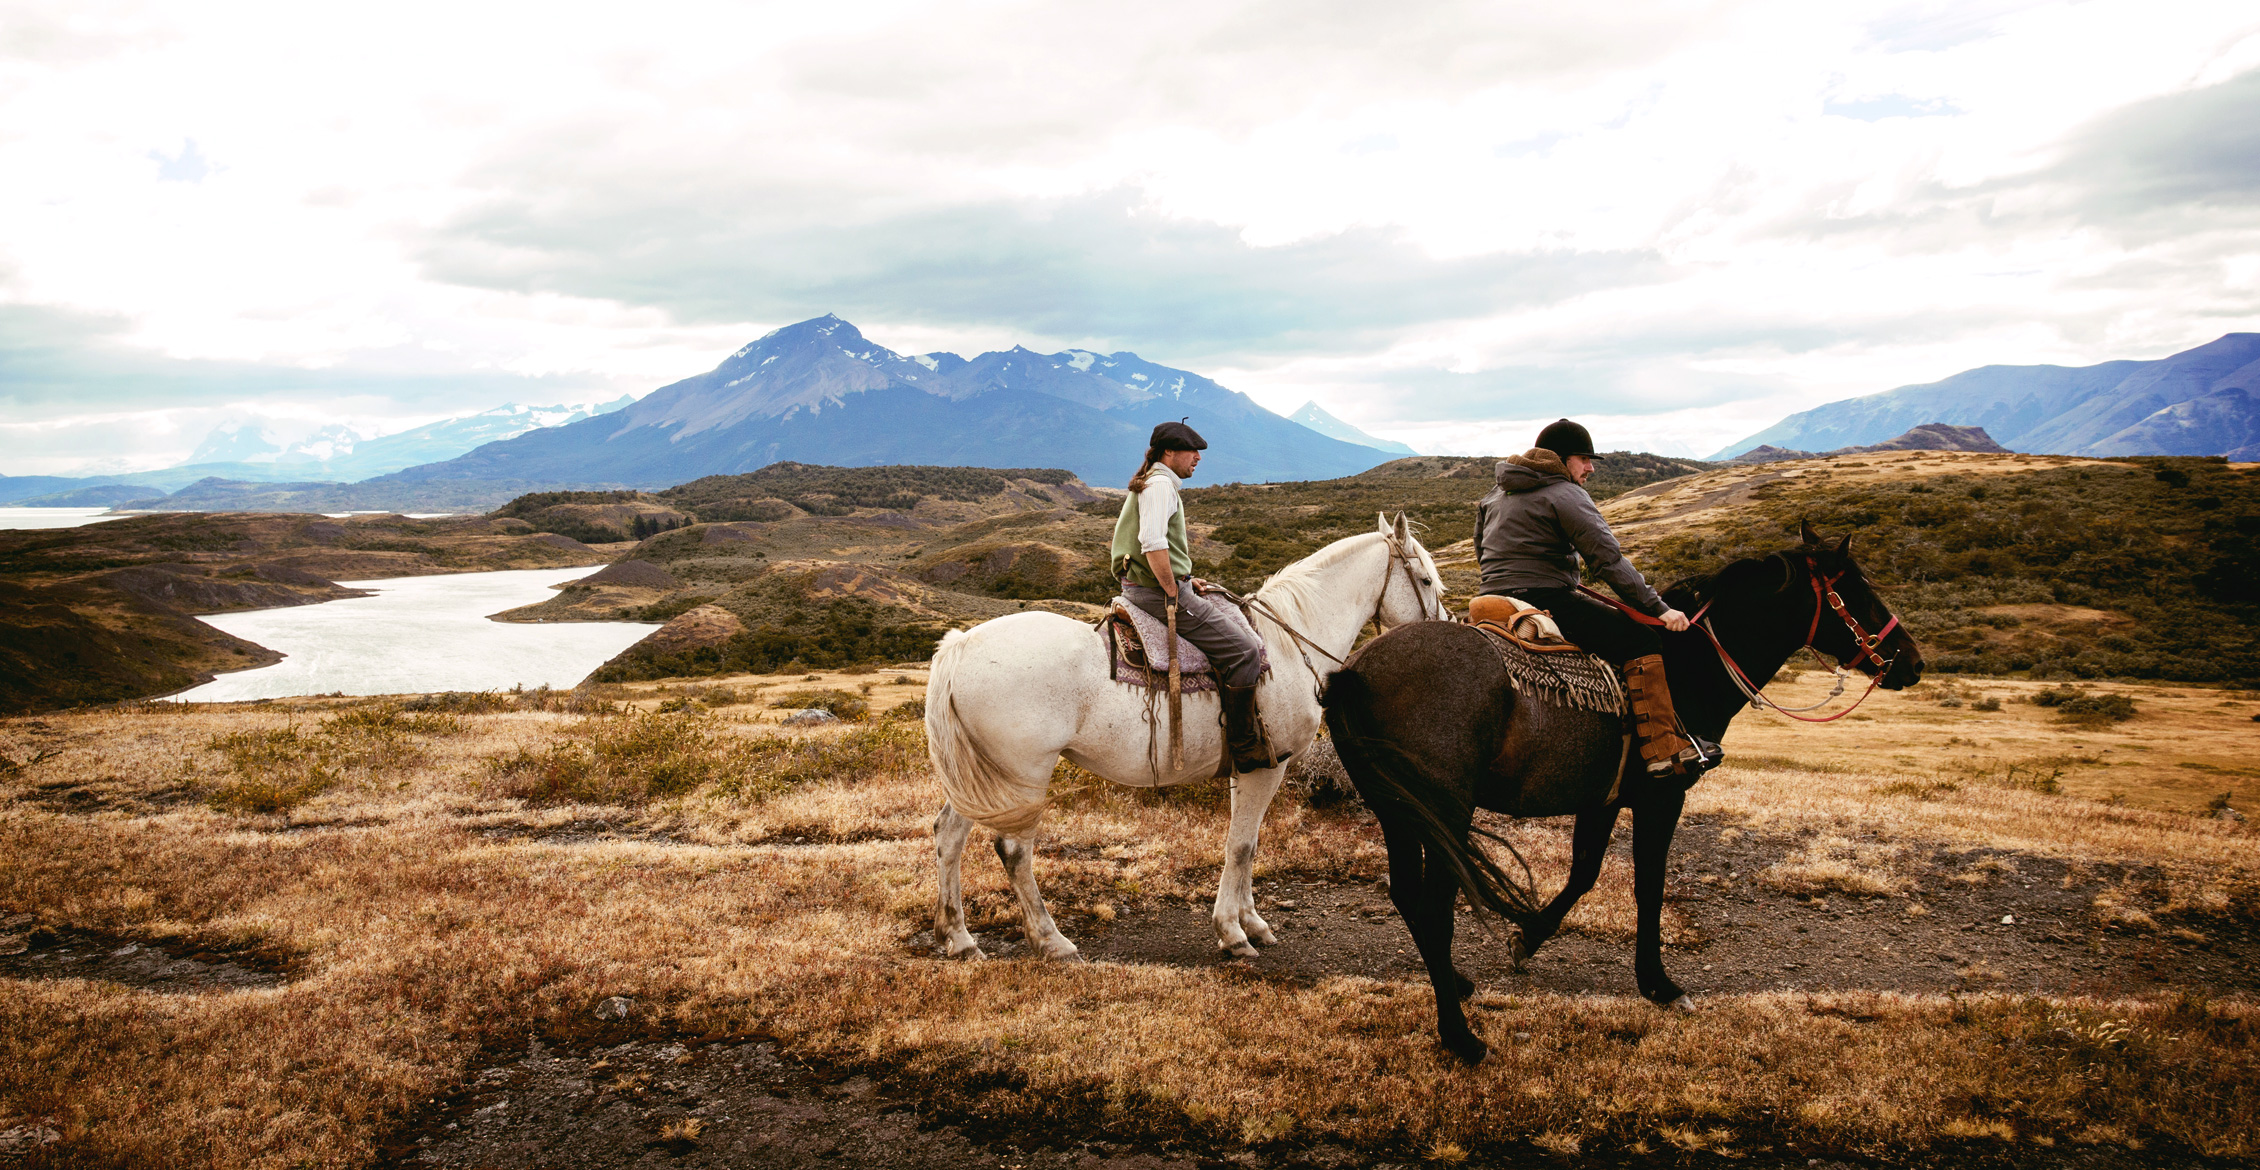 The-Singular-Torres-del-Paine-Chile-Luxury-Travel-Ker-Downey-Cost-of-Travel-to-South-America